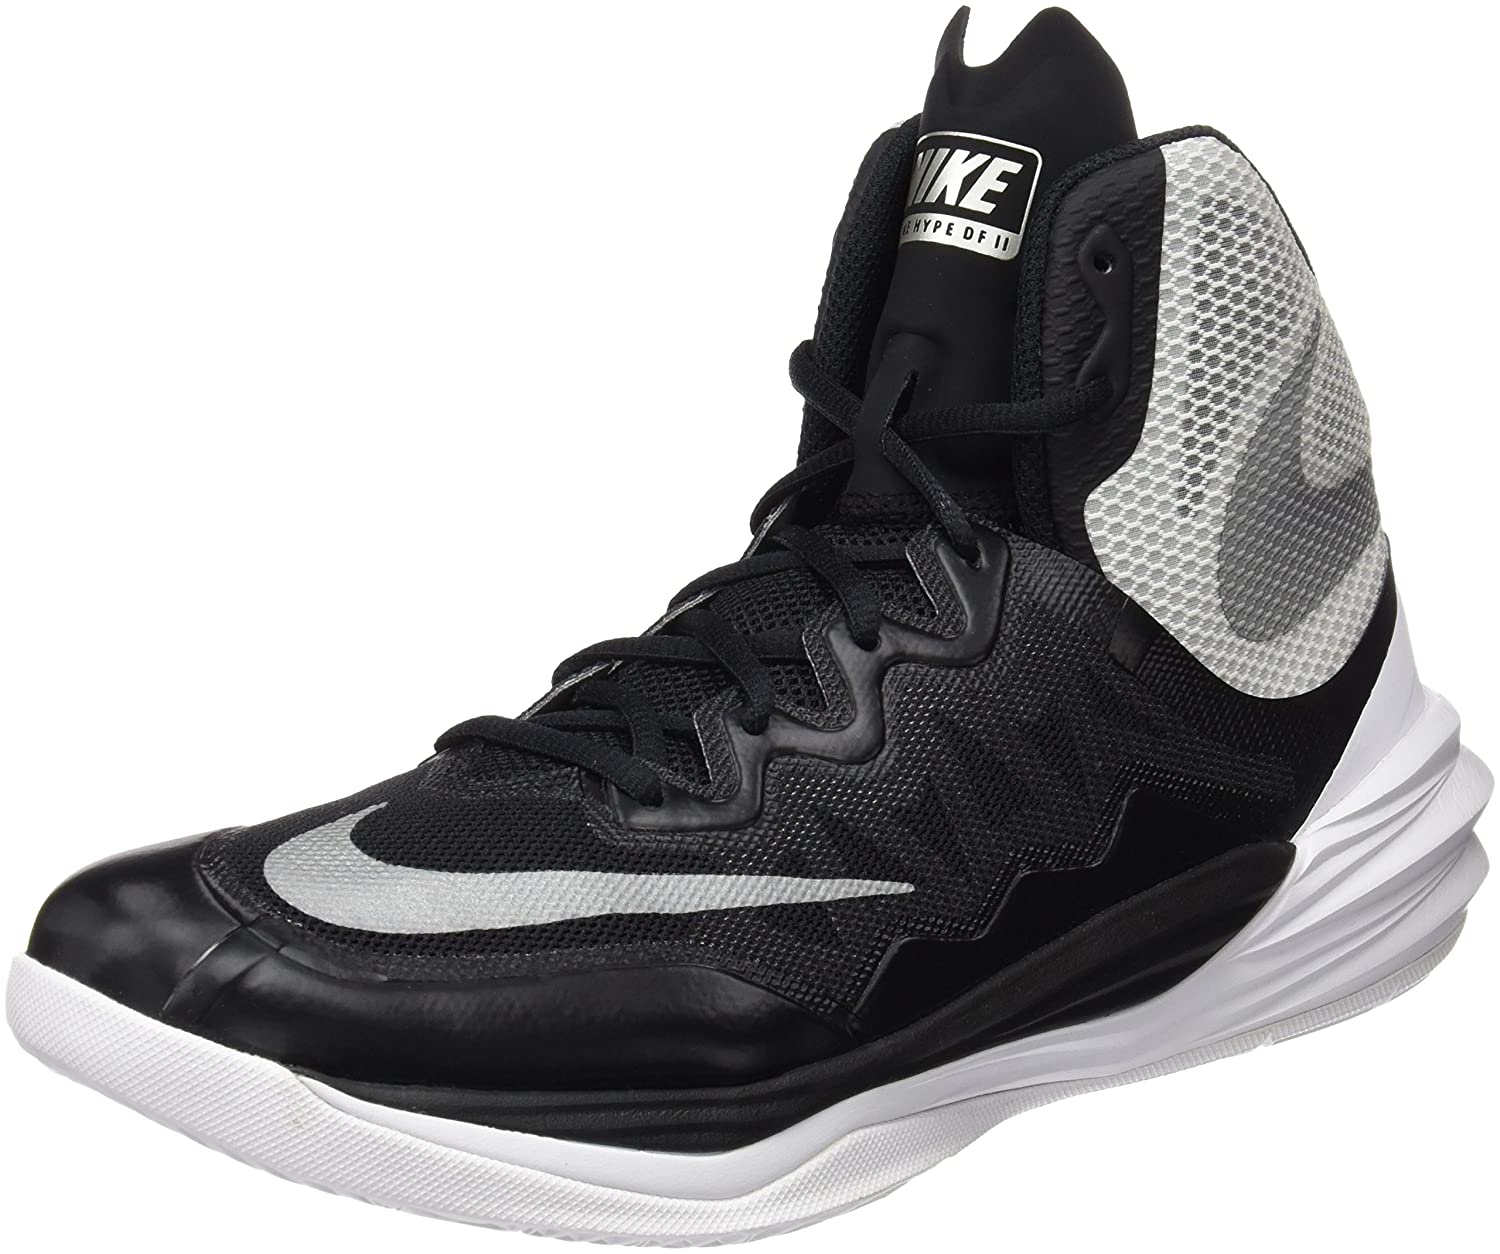 purchase cheap cf984 27b5a Nike Men's Prime Hype Df Ii Basketball Shoes